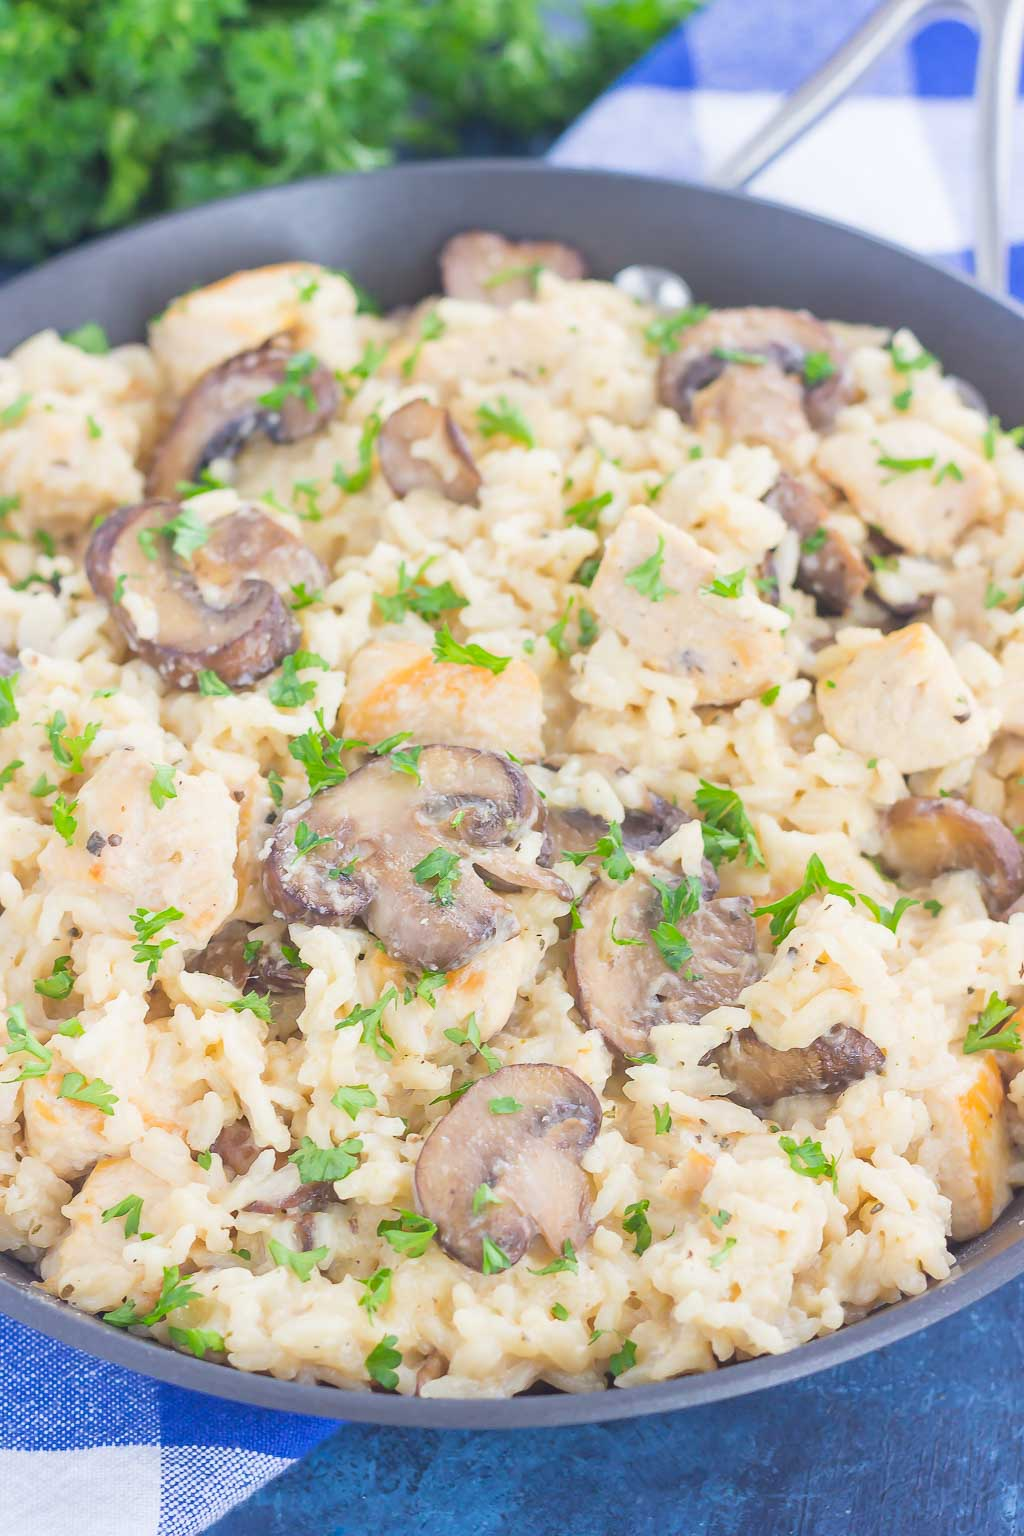 This One Pan Chicken and Mushroom Parmesan Rice is perfect for busy weeknights. Just a few simple ingredients is all it takes for this easy, one pan meal that's packed with flavor. It's guaranteed to be a favorite all year long!